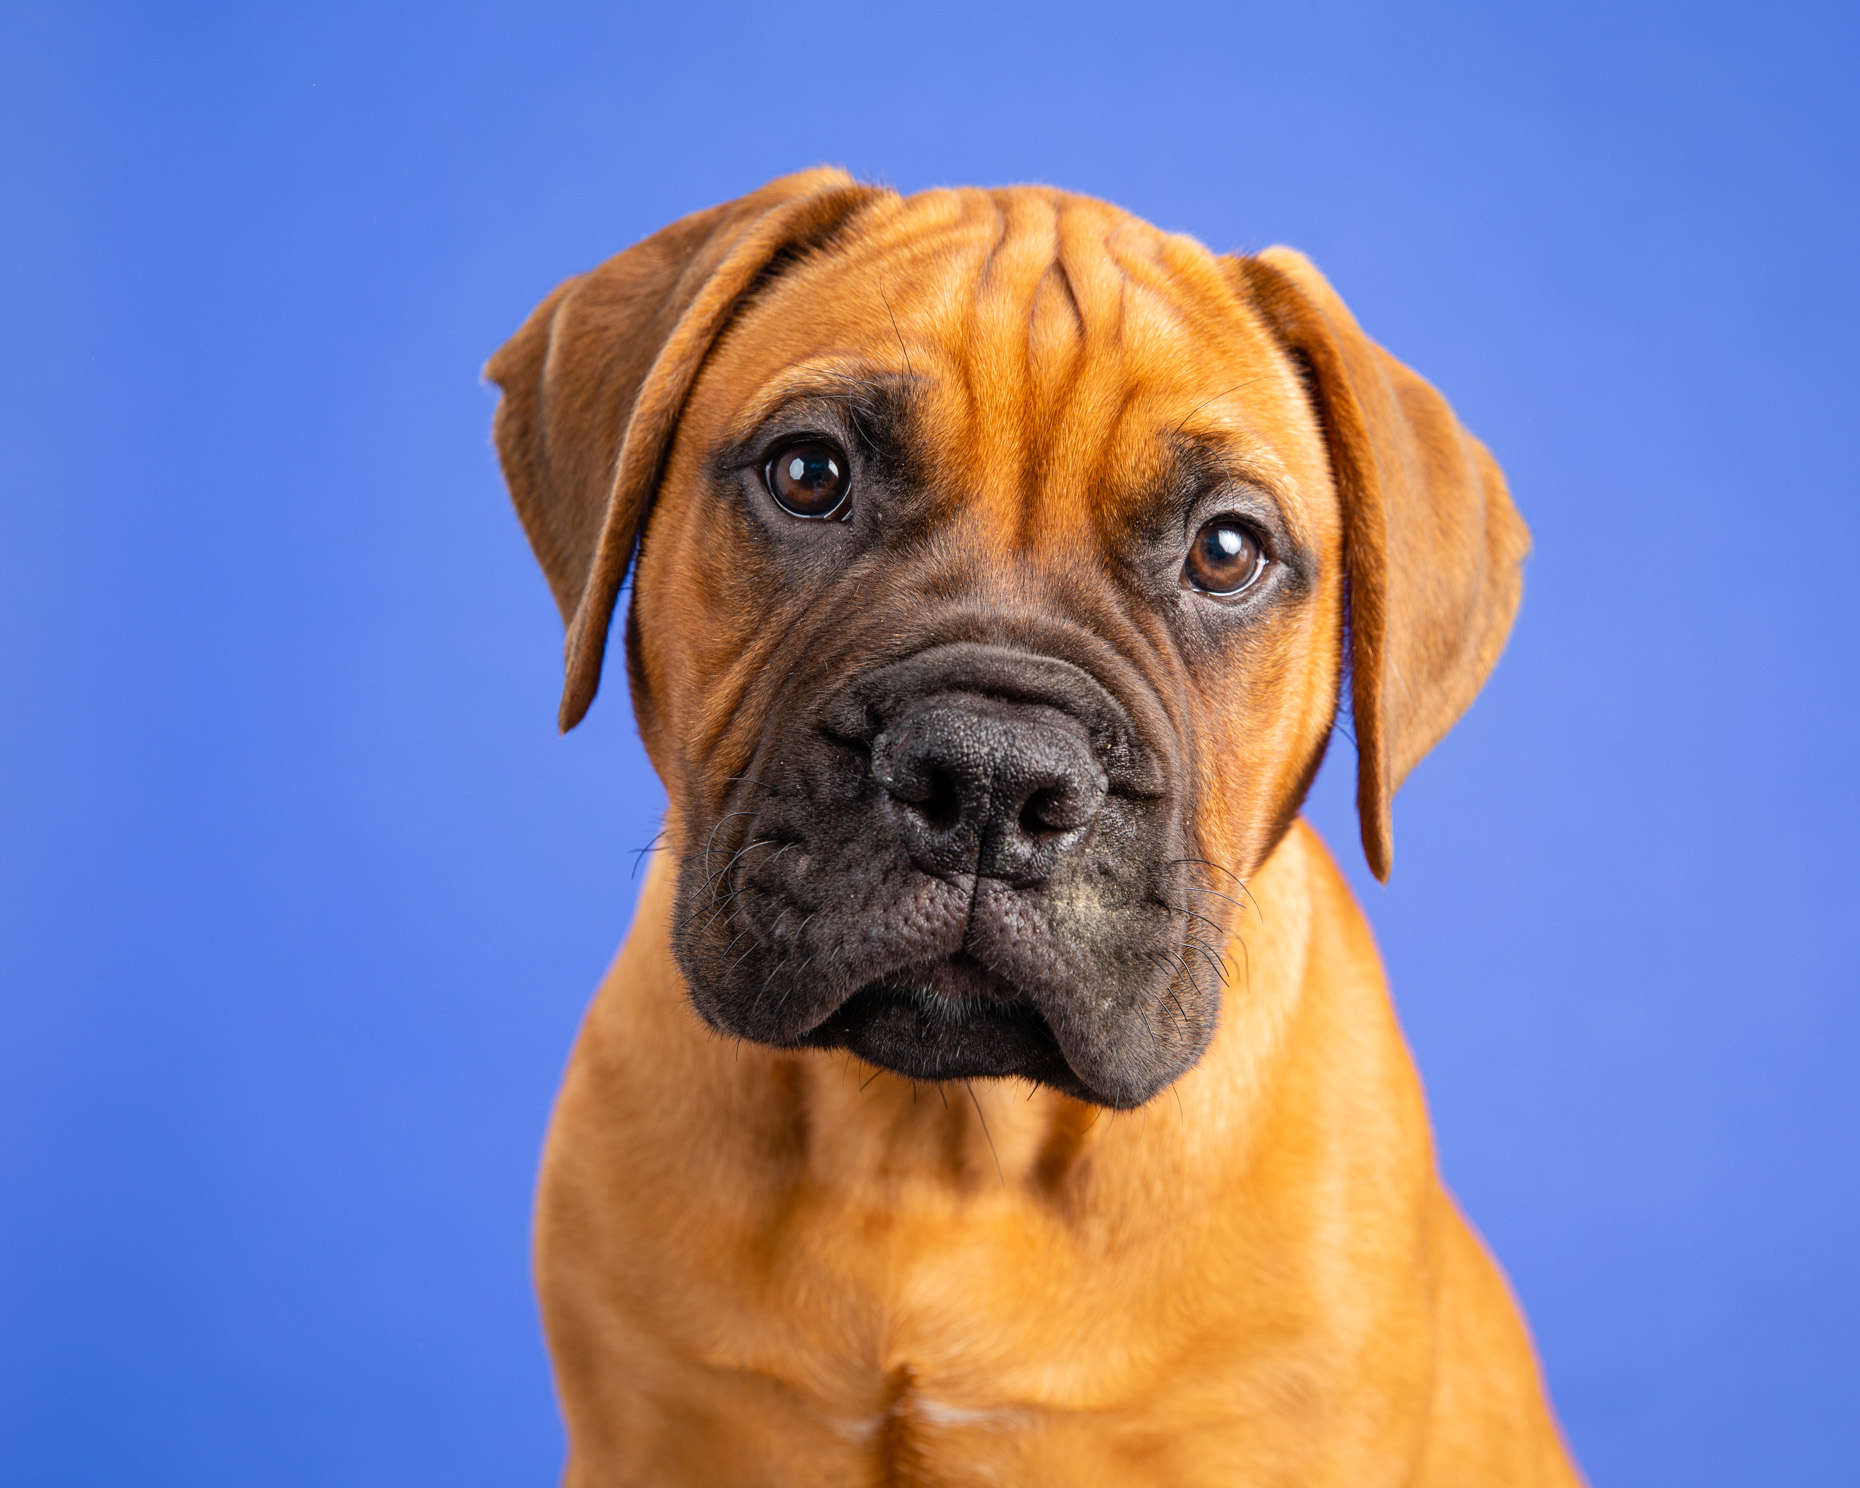 Puppy Photography | Mastiff Puppy on Blue by Mark Rogers